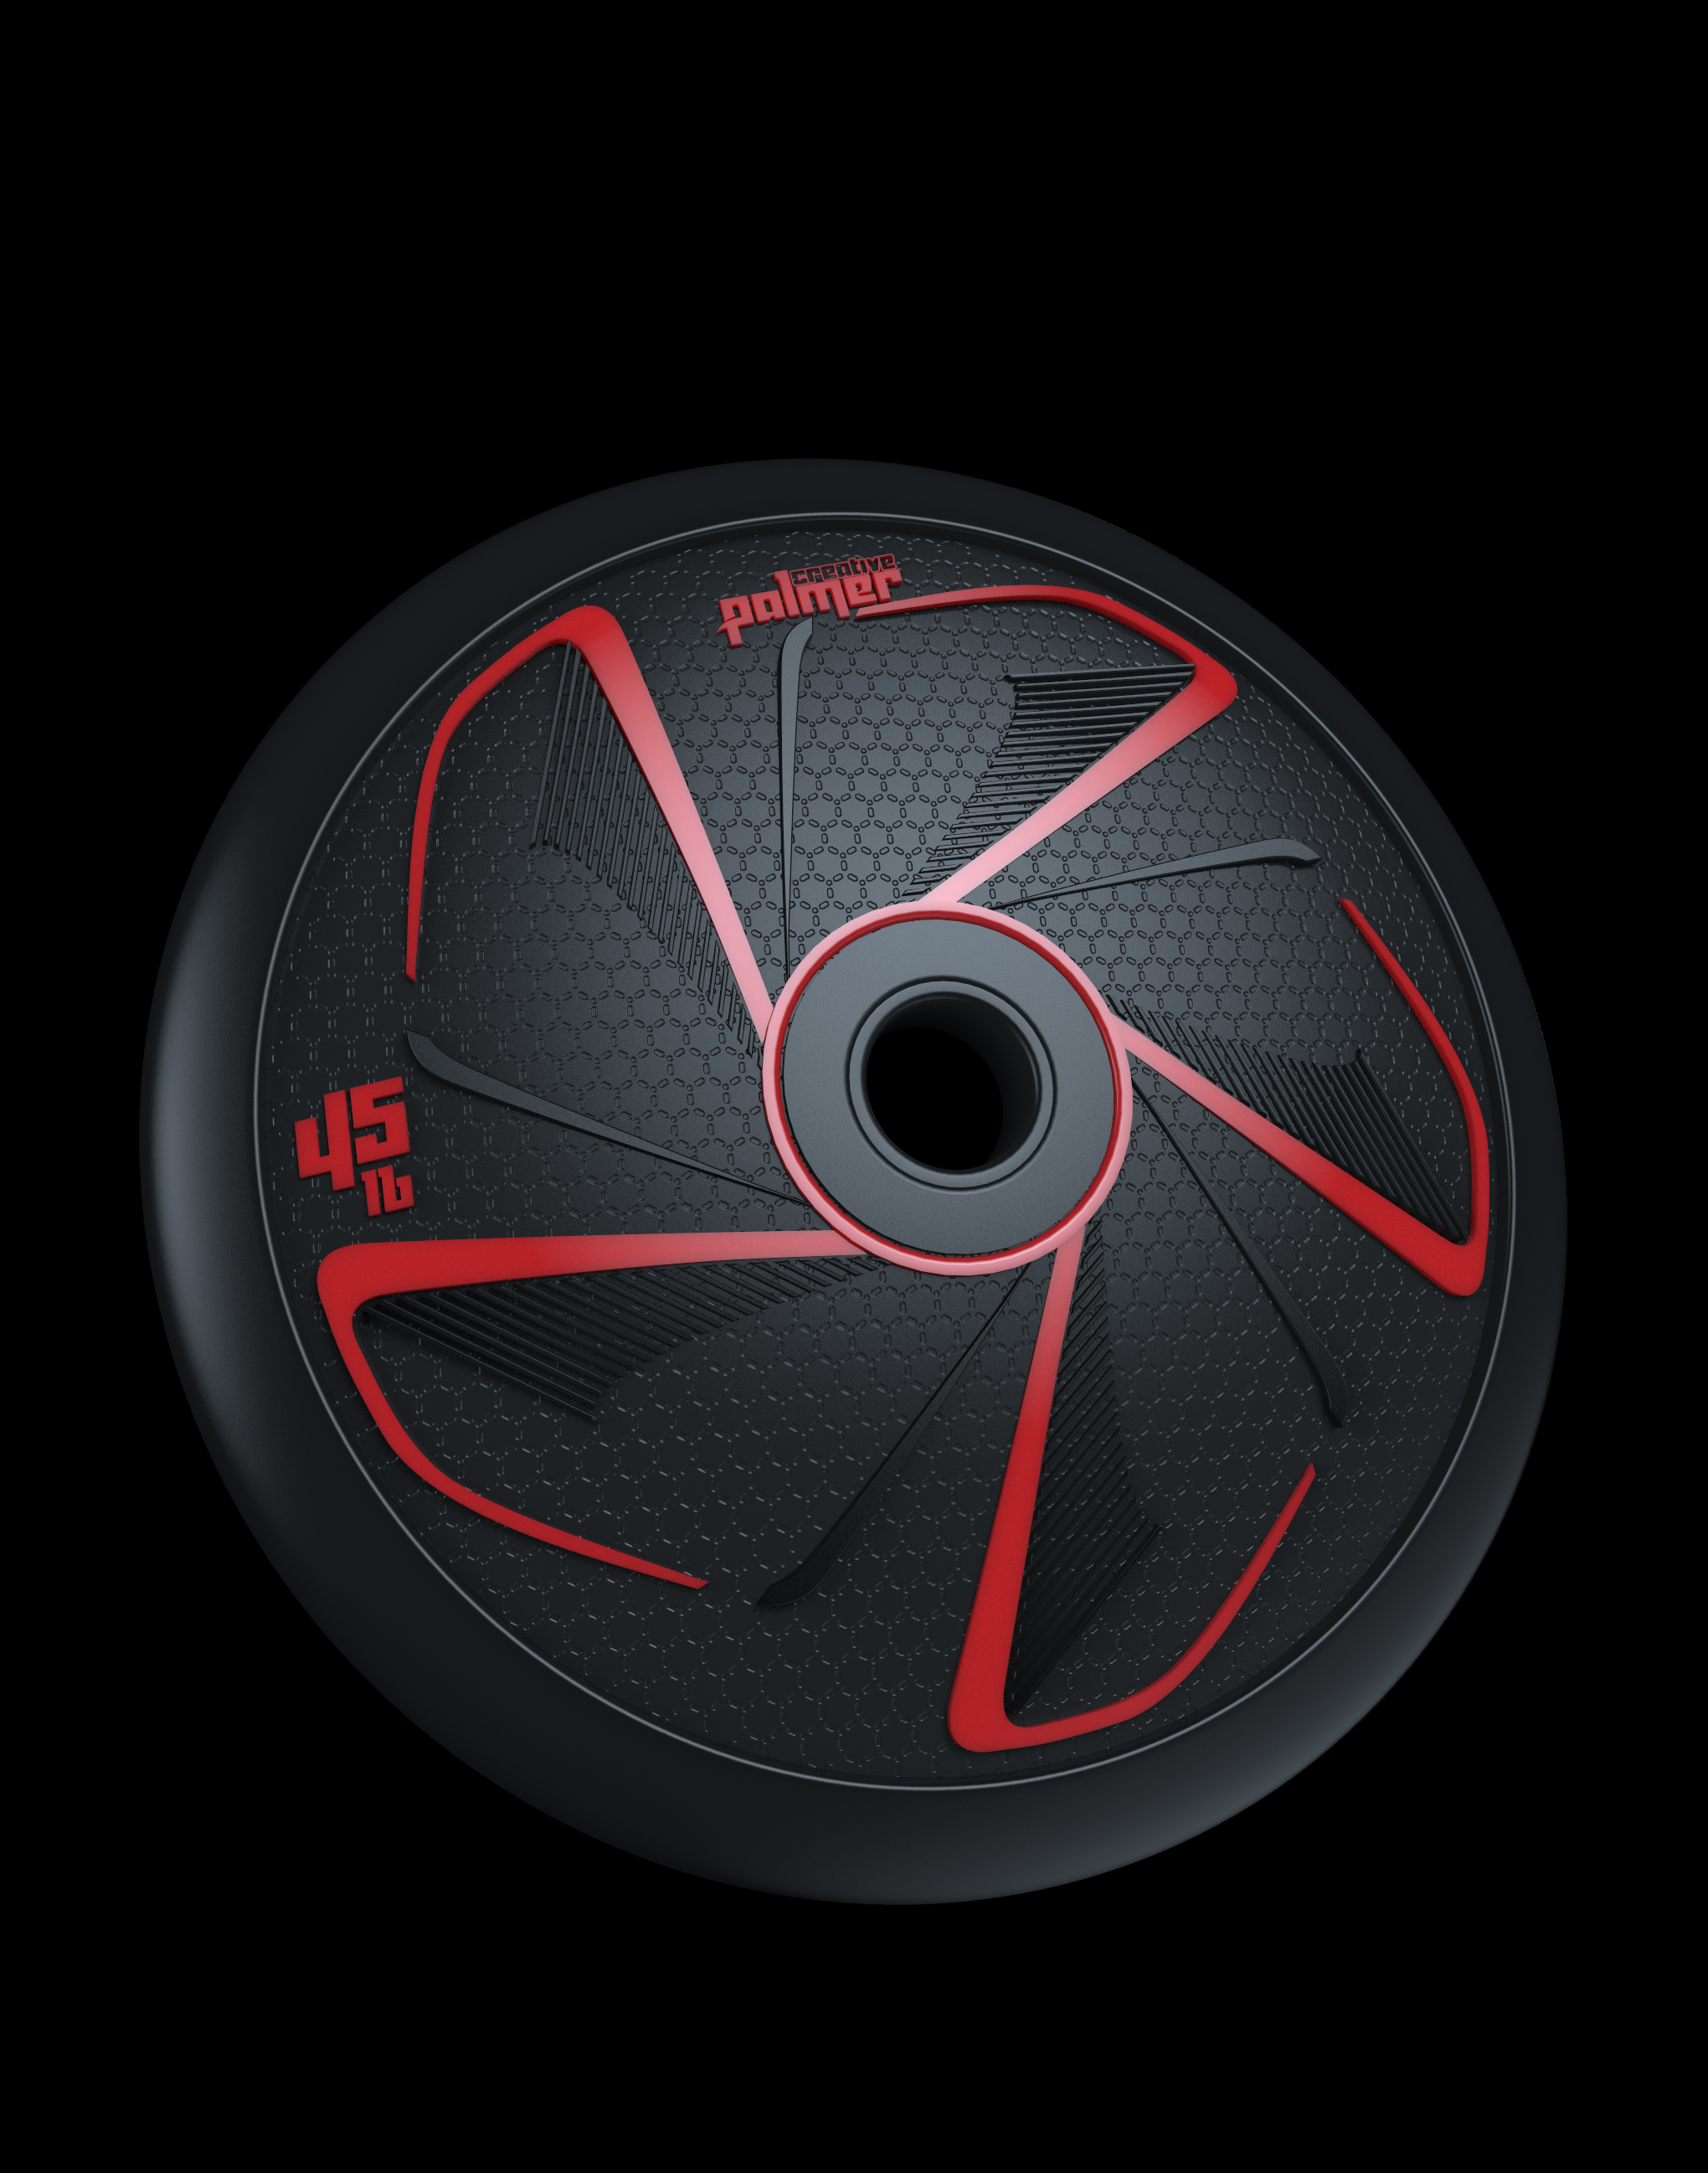 Fitness Weight Plate Product Design